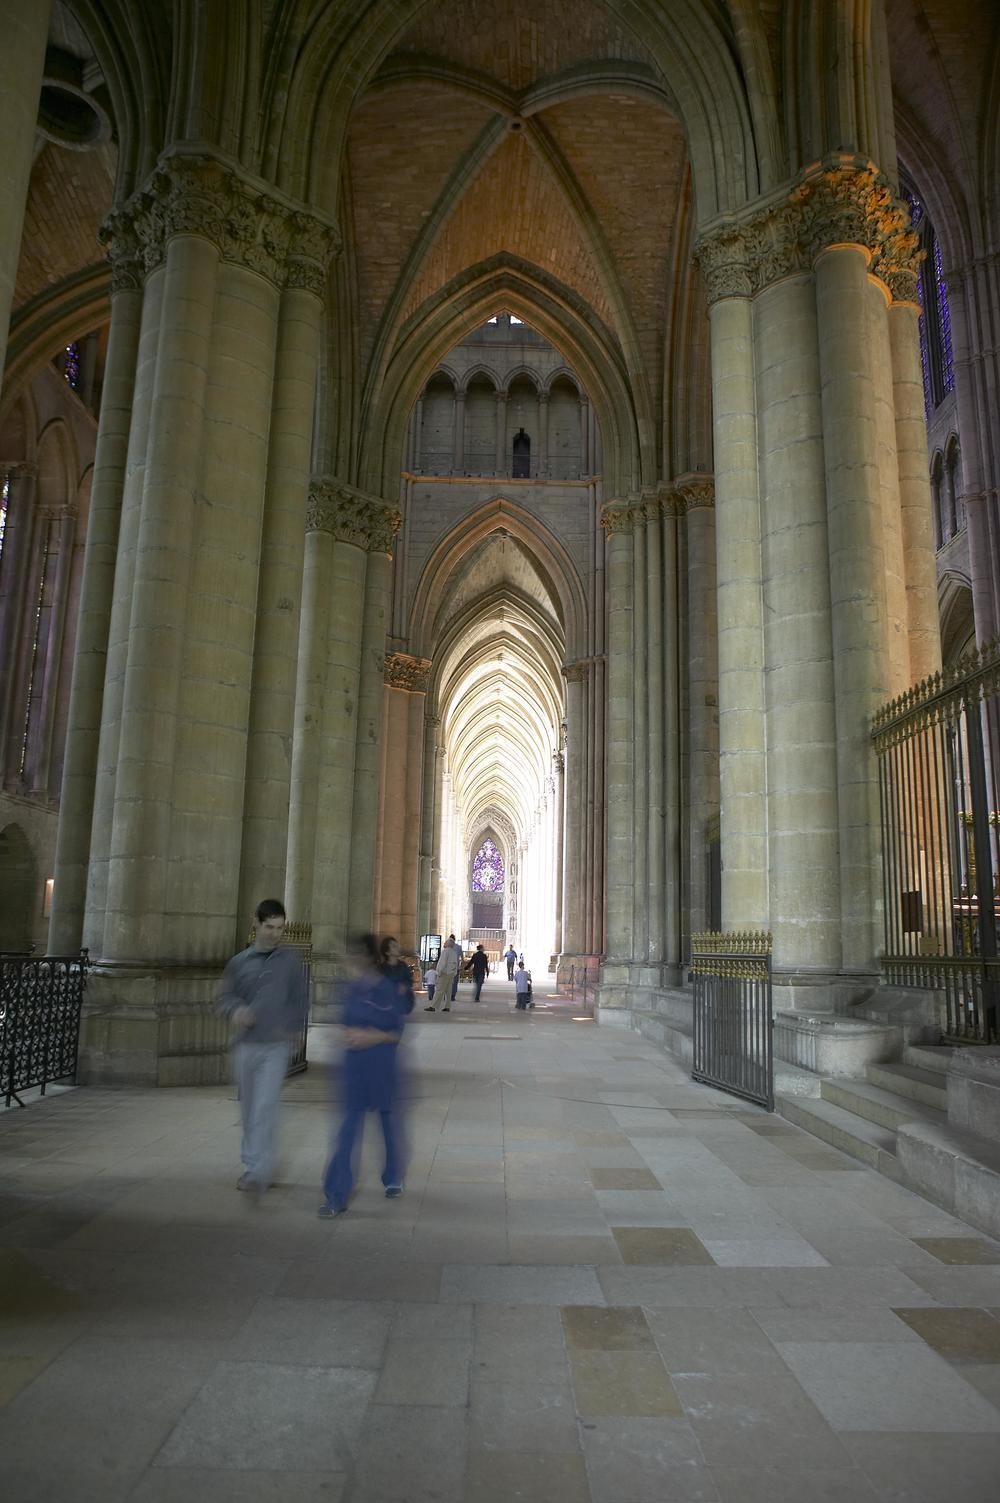 Interior of Reims Cathedral